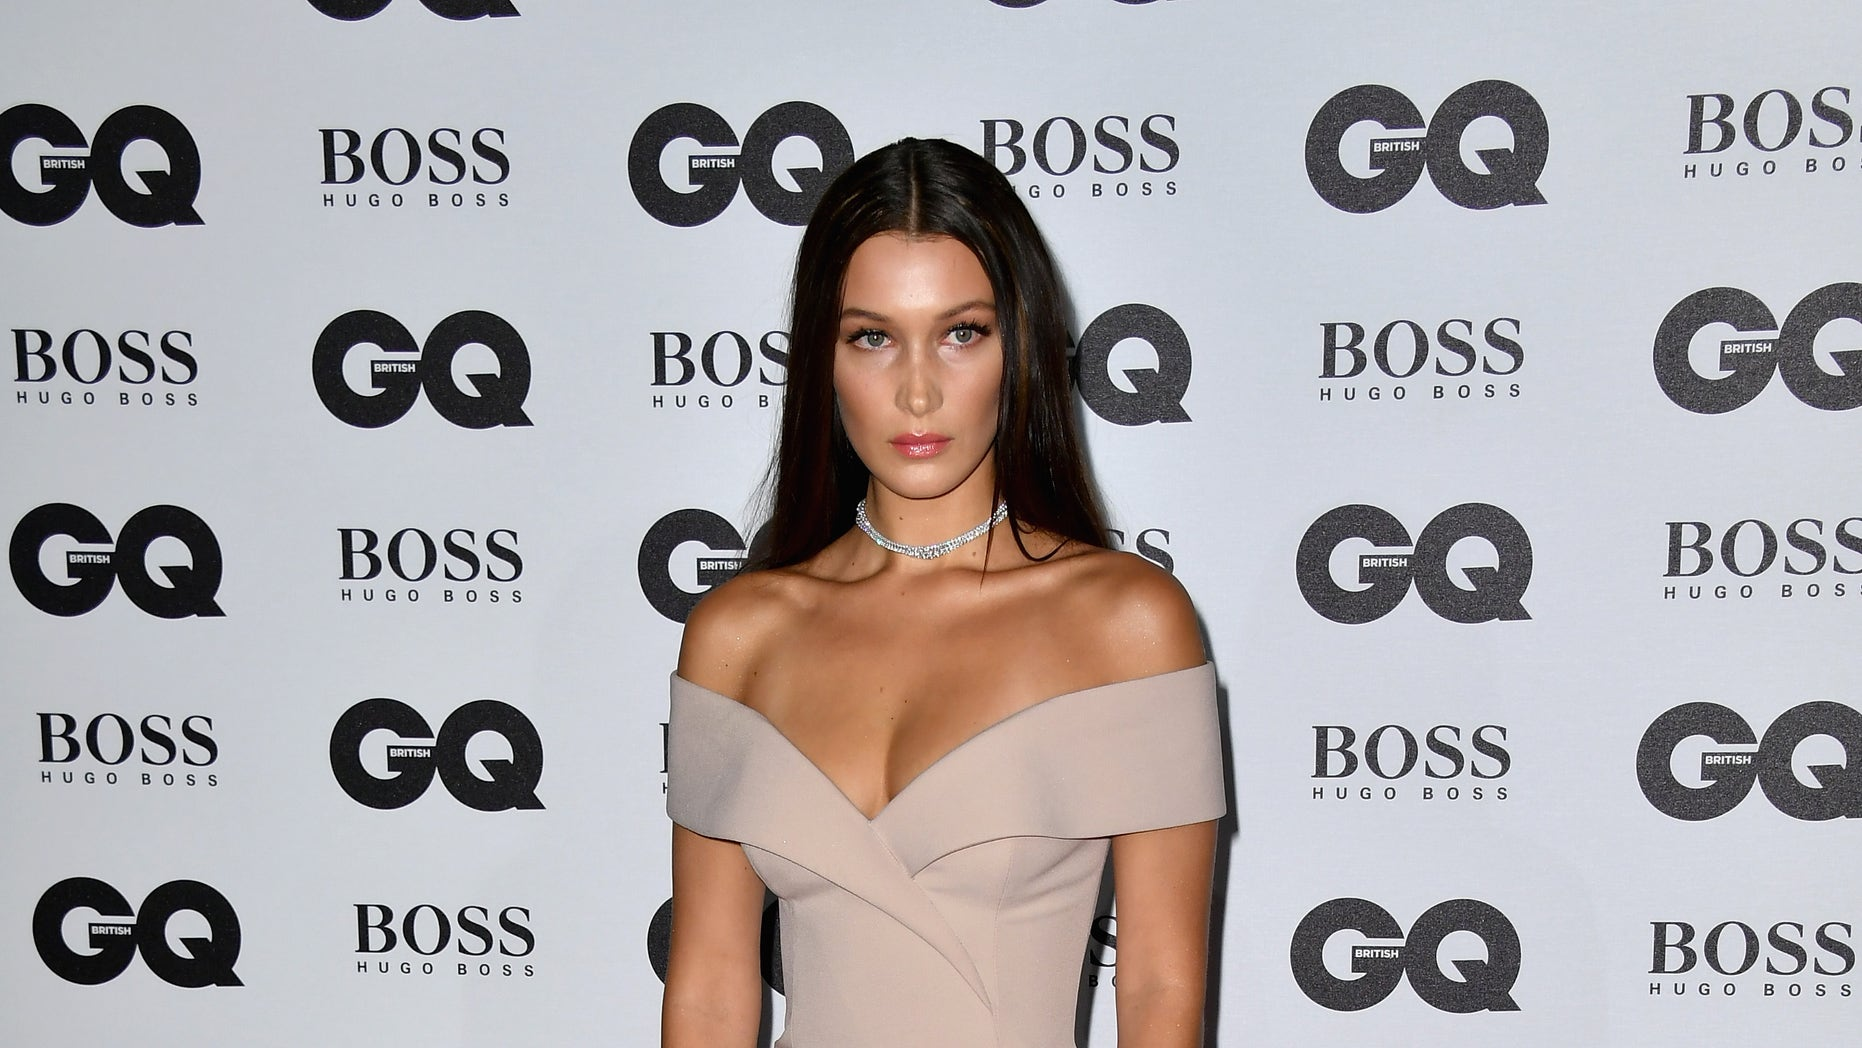 Bella Hadid arrives for the GQ Men of the Year Awards at Tate Modern on September 6, 2016, in London, England